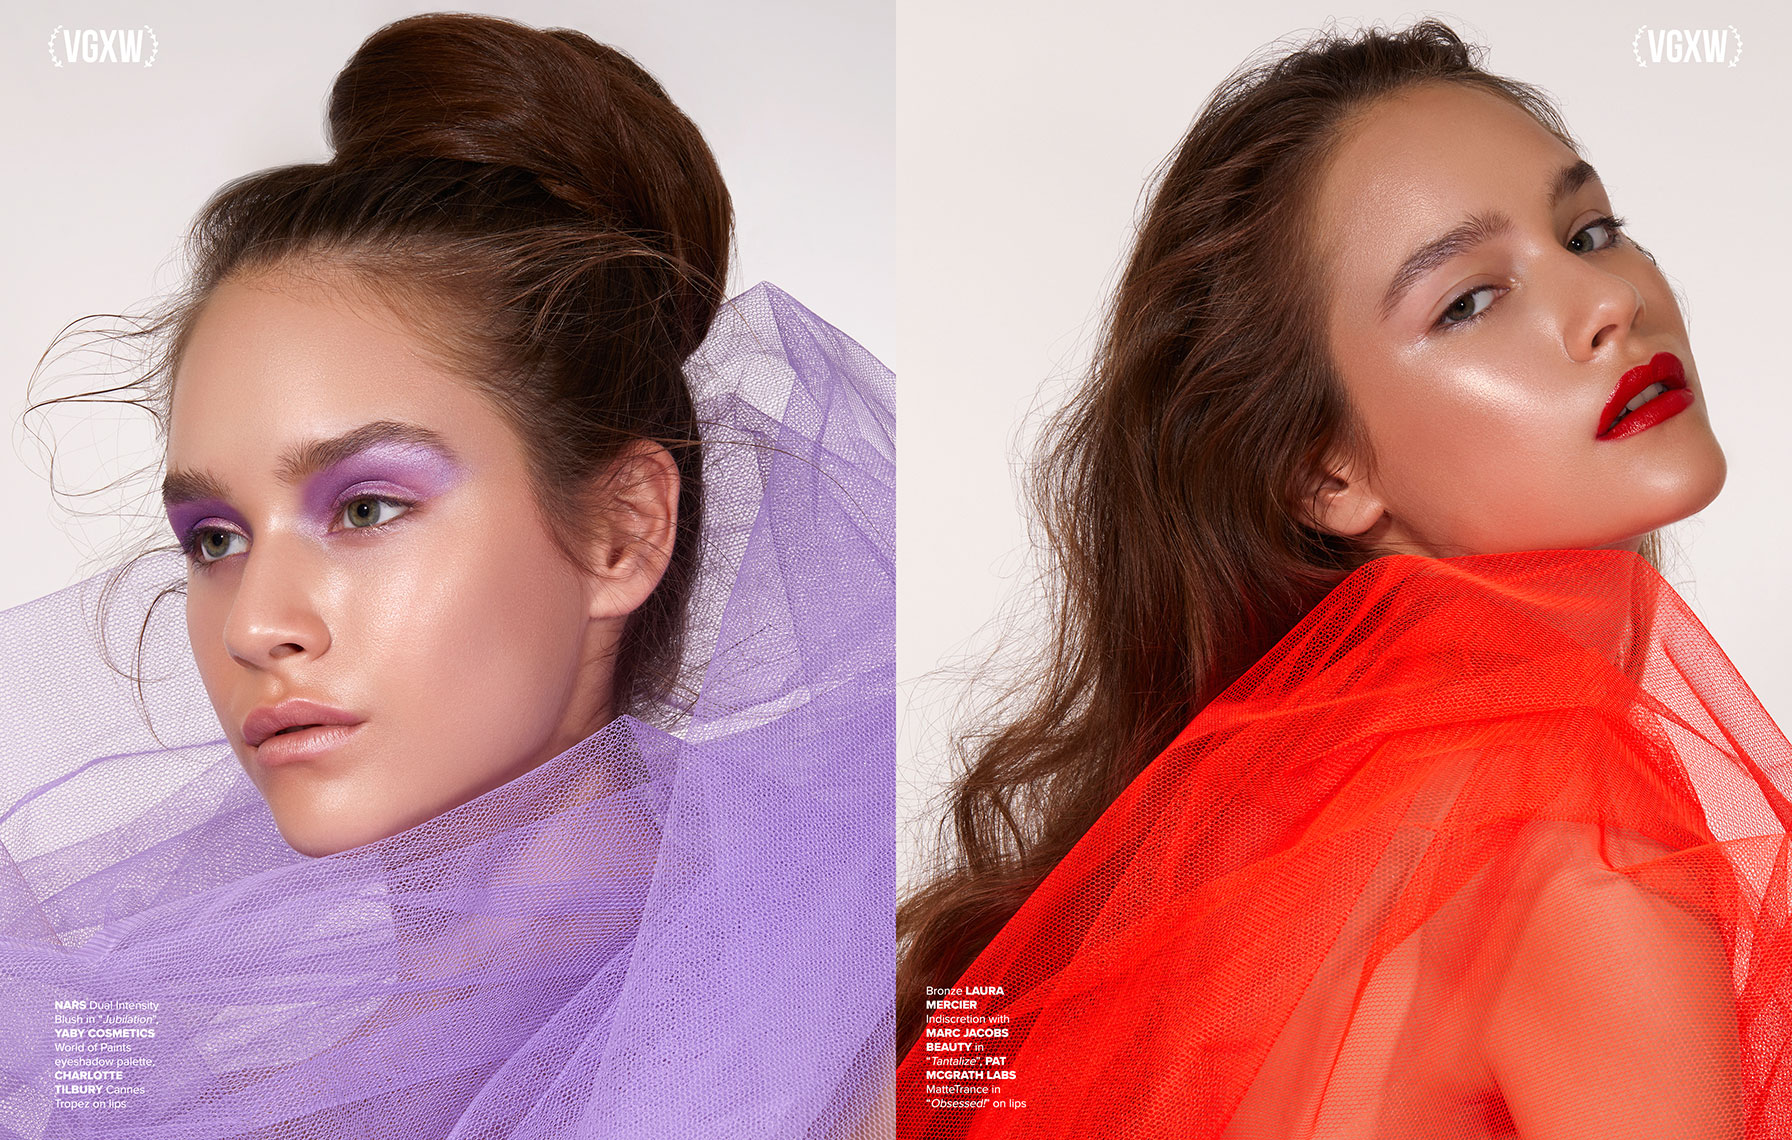 vgxw-magazine_december-2019_book-2_tulle_Page_3